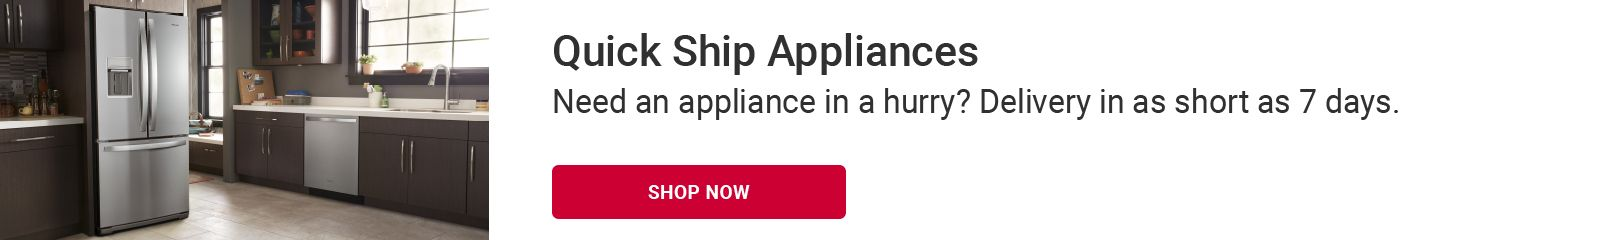 Need an appliance in a hurry? Delivery in as short as 7 days